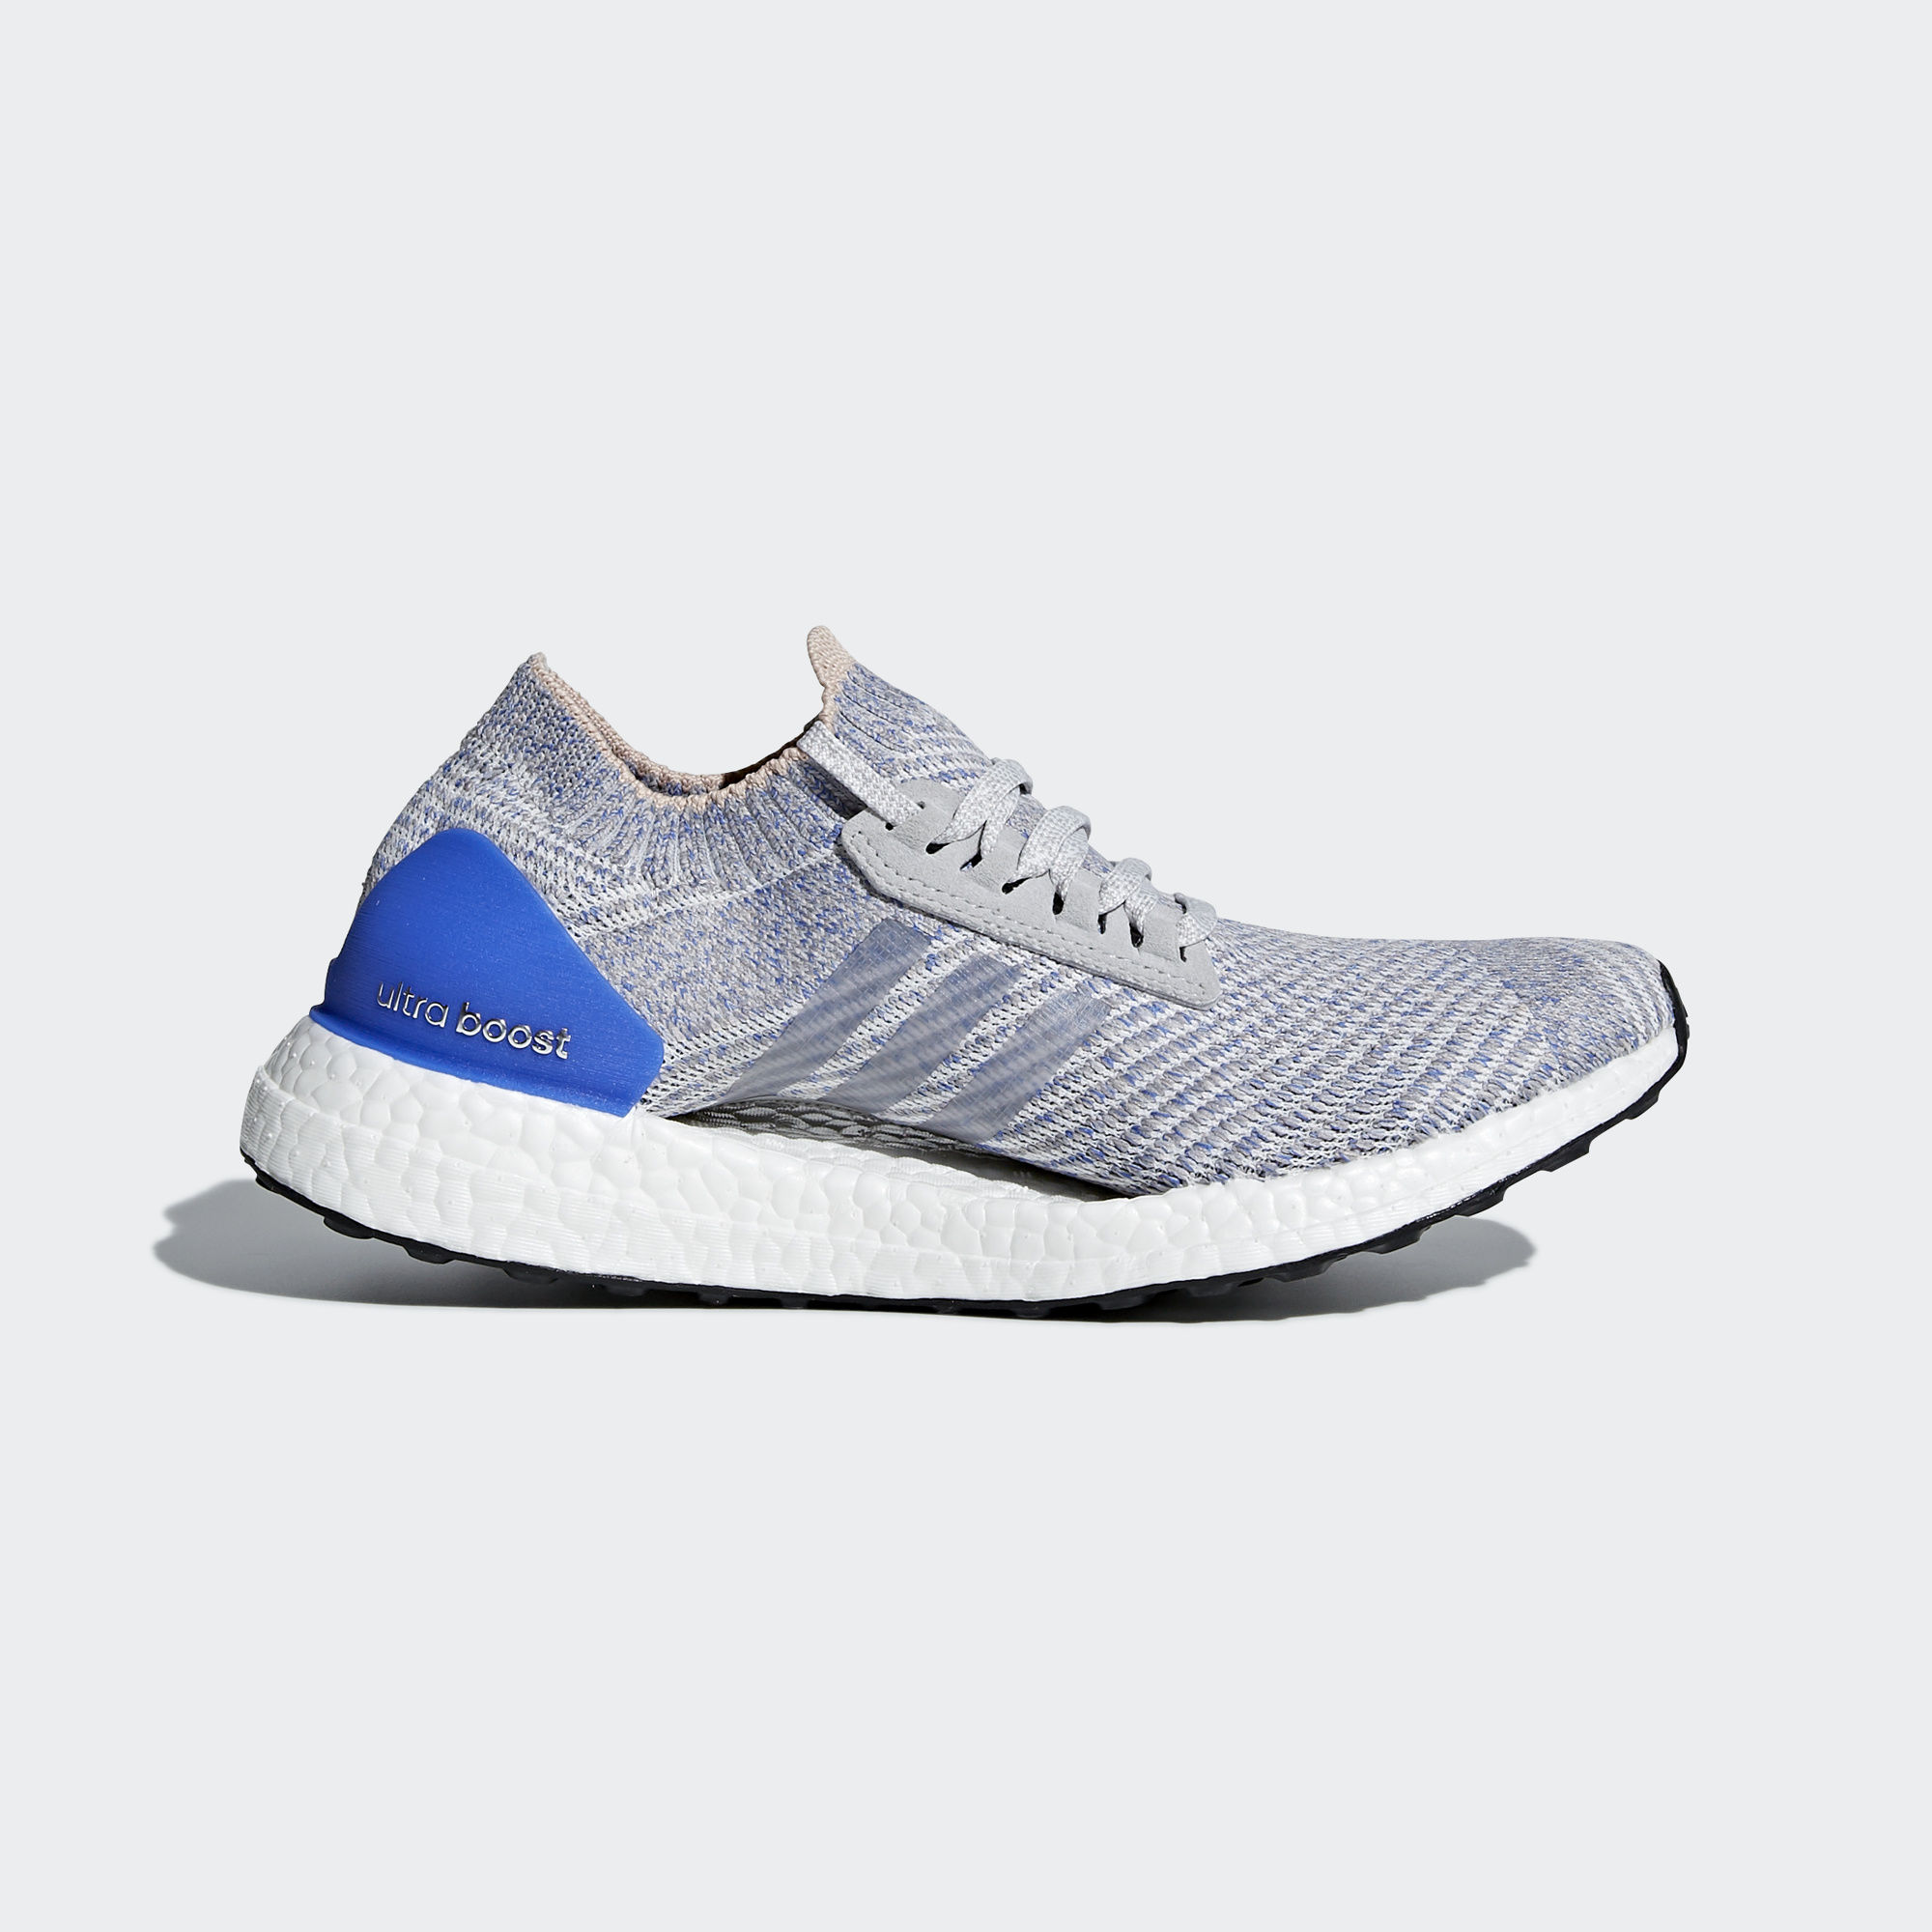 Adidas UltraBOOST X W - Grey Two F17 / Hi-res Blue